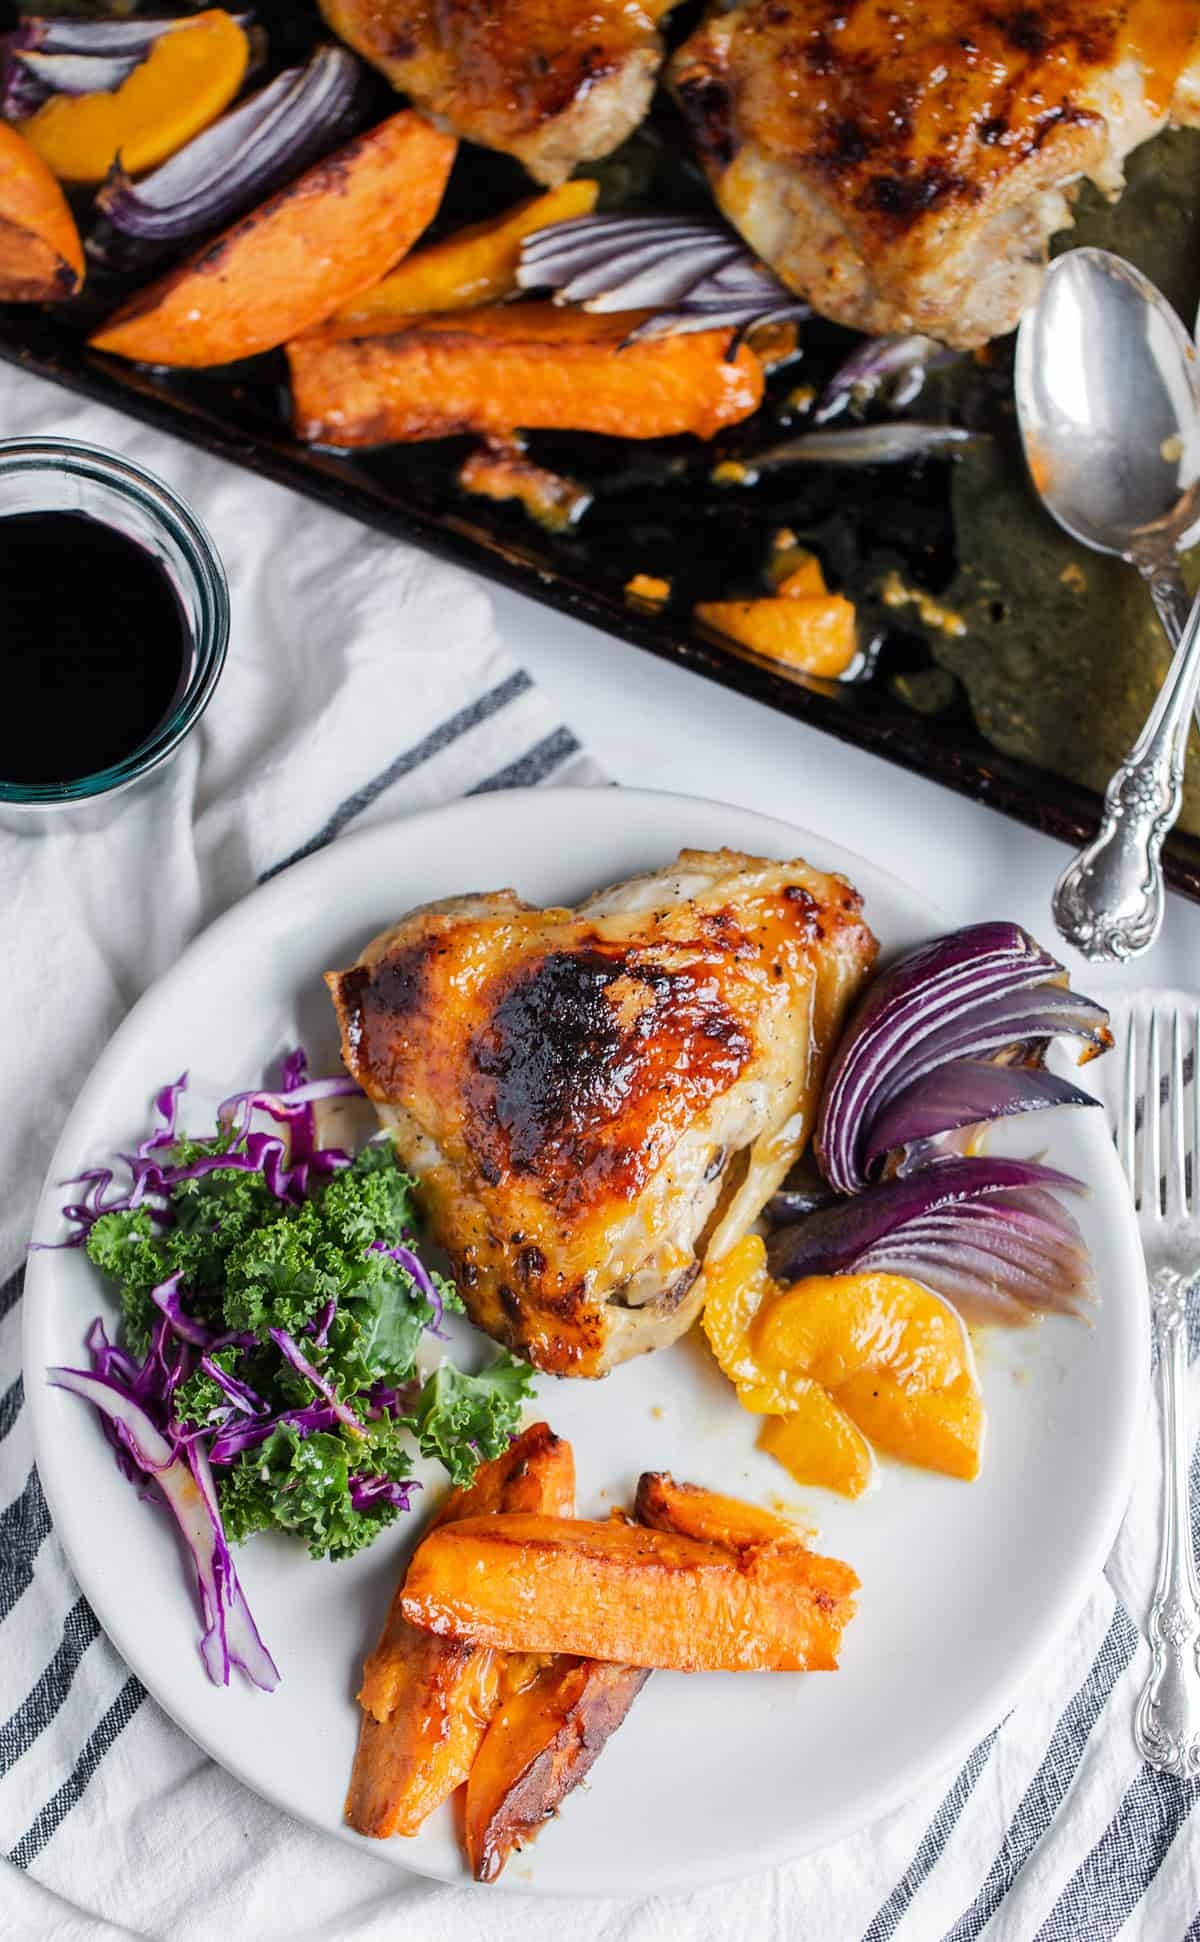 Baked chicken thigh sheet pan meal